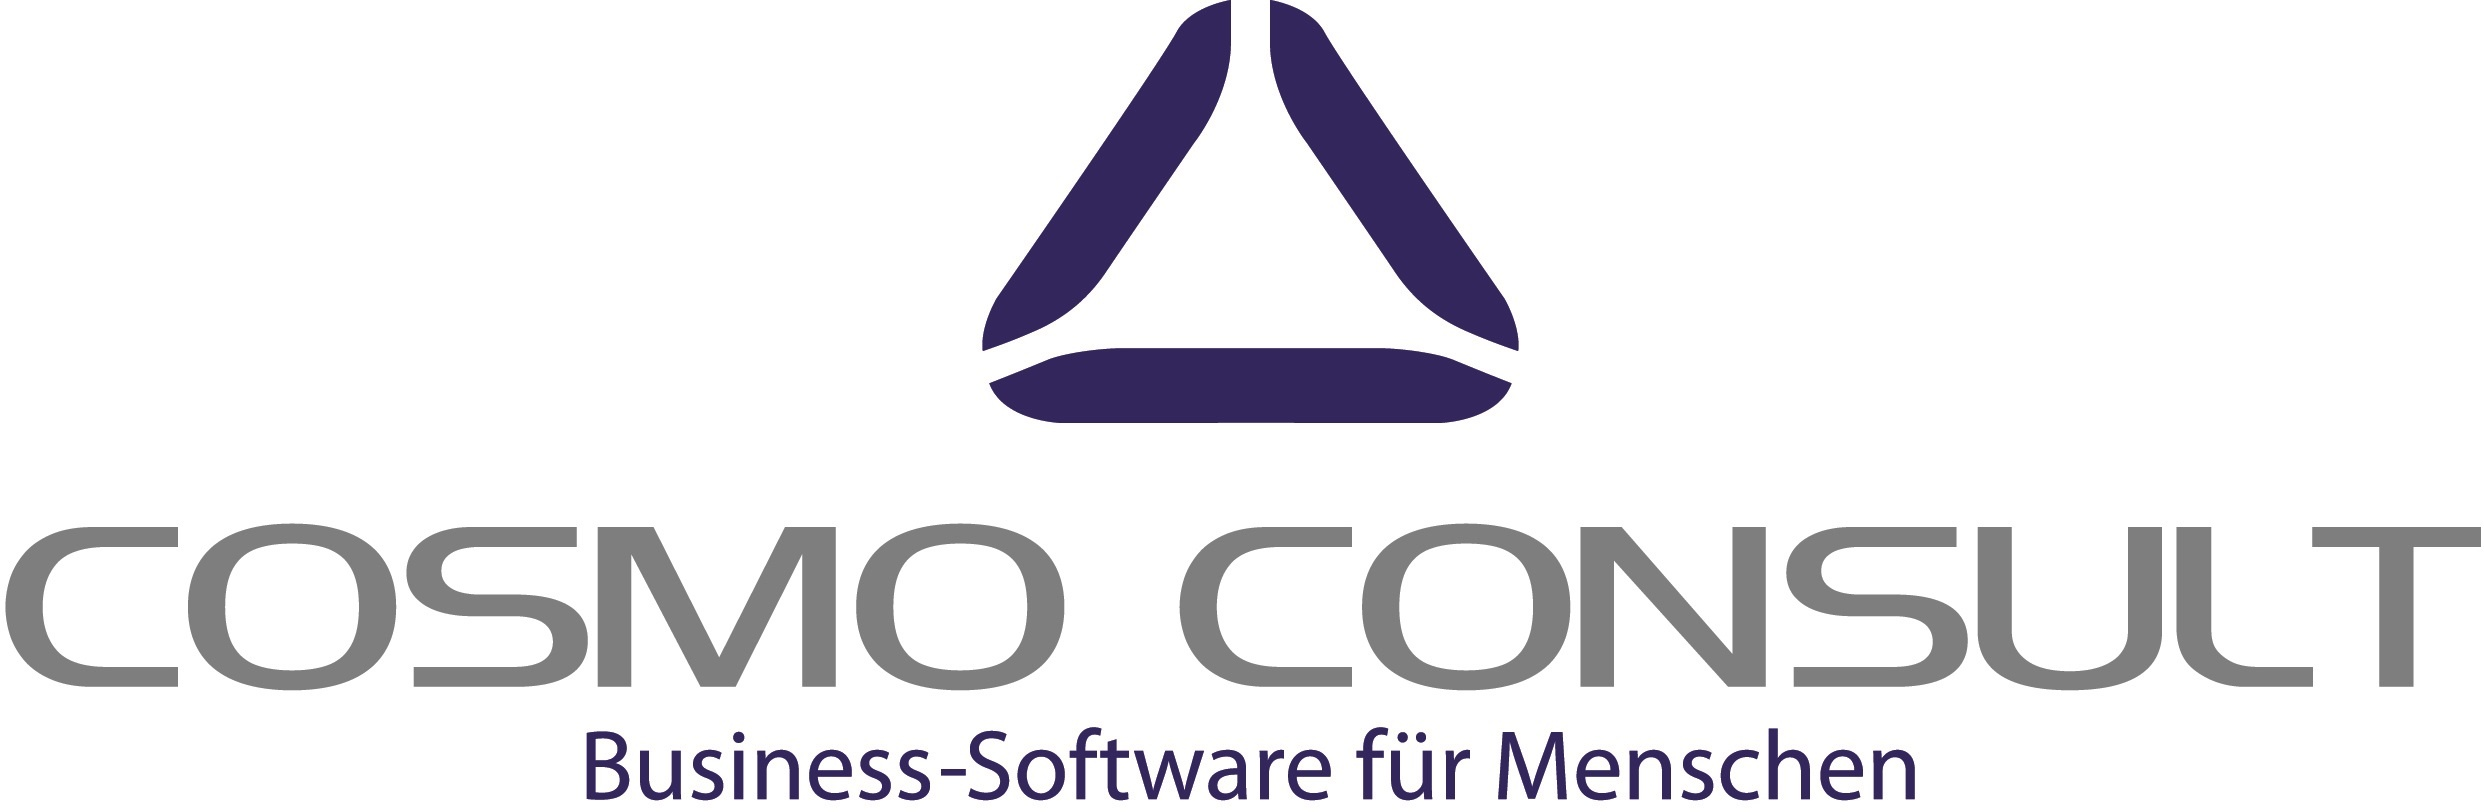 Cosmo Consult is reseller of NETRONIC'S Visual Scheduling Suite